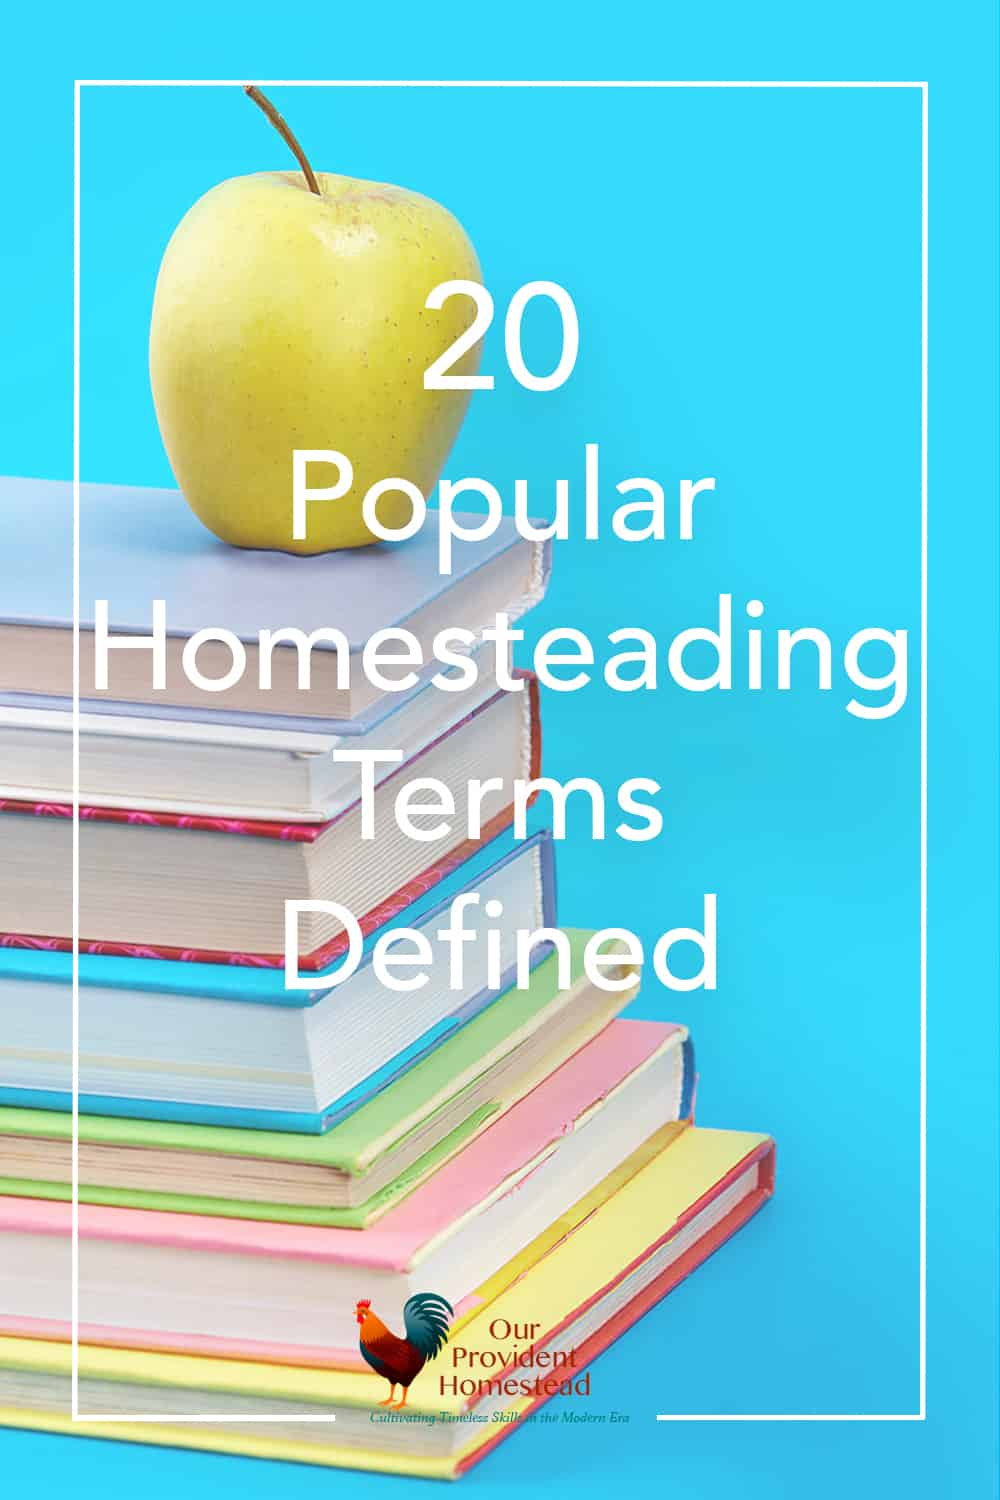 Is homesteading new and confusing for you? Click here to see 20 popular homesteading terms defined and get more information about homesteading. #homesteading #homesteadterms